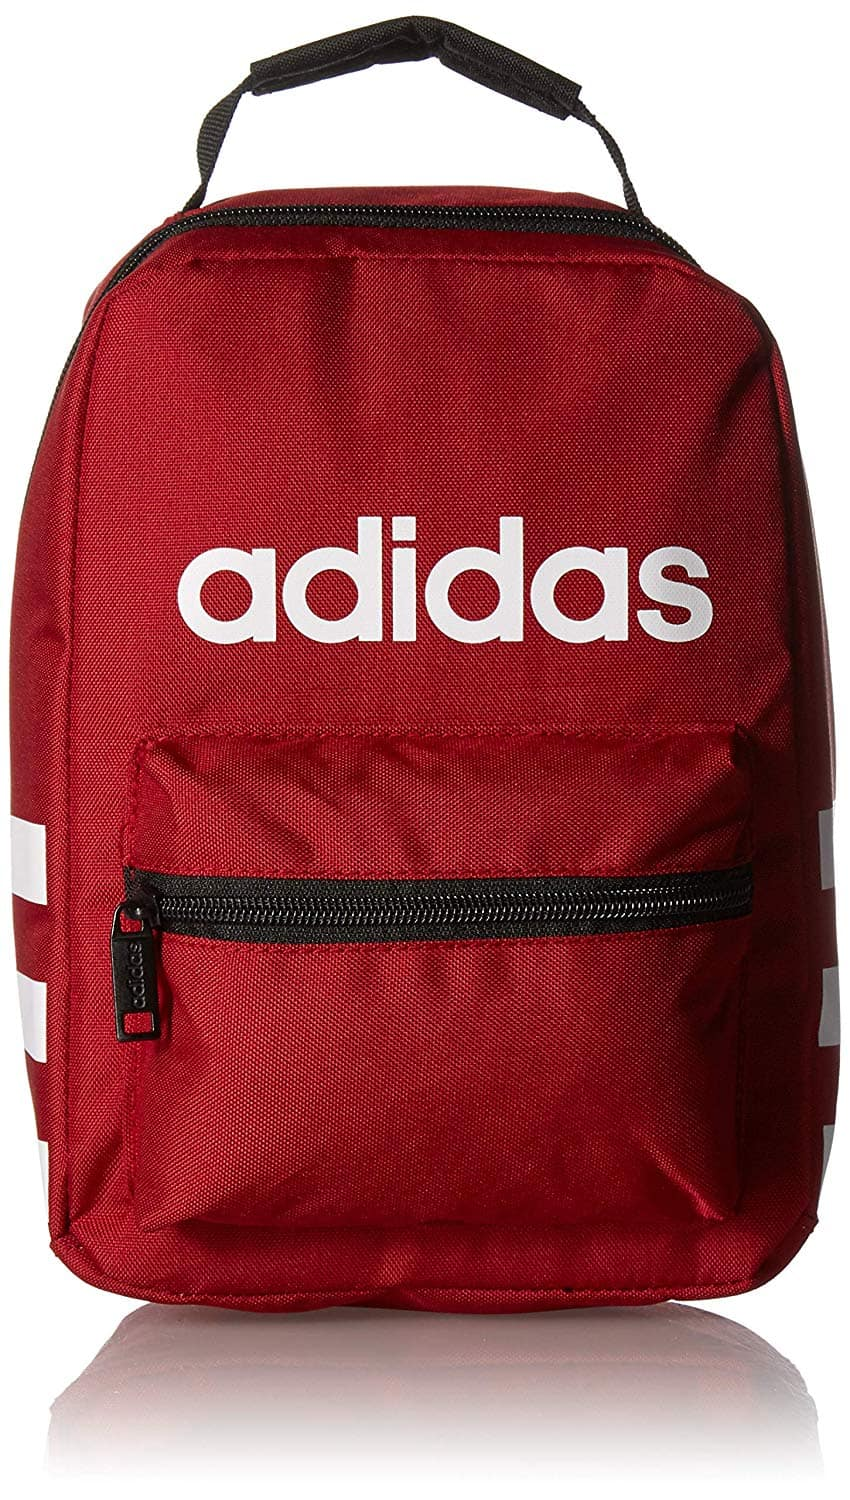 Adidas Unisex Santiago Insulated Lunch Bag (Limited Colors) $12.50 - Amazon